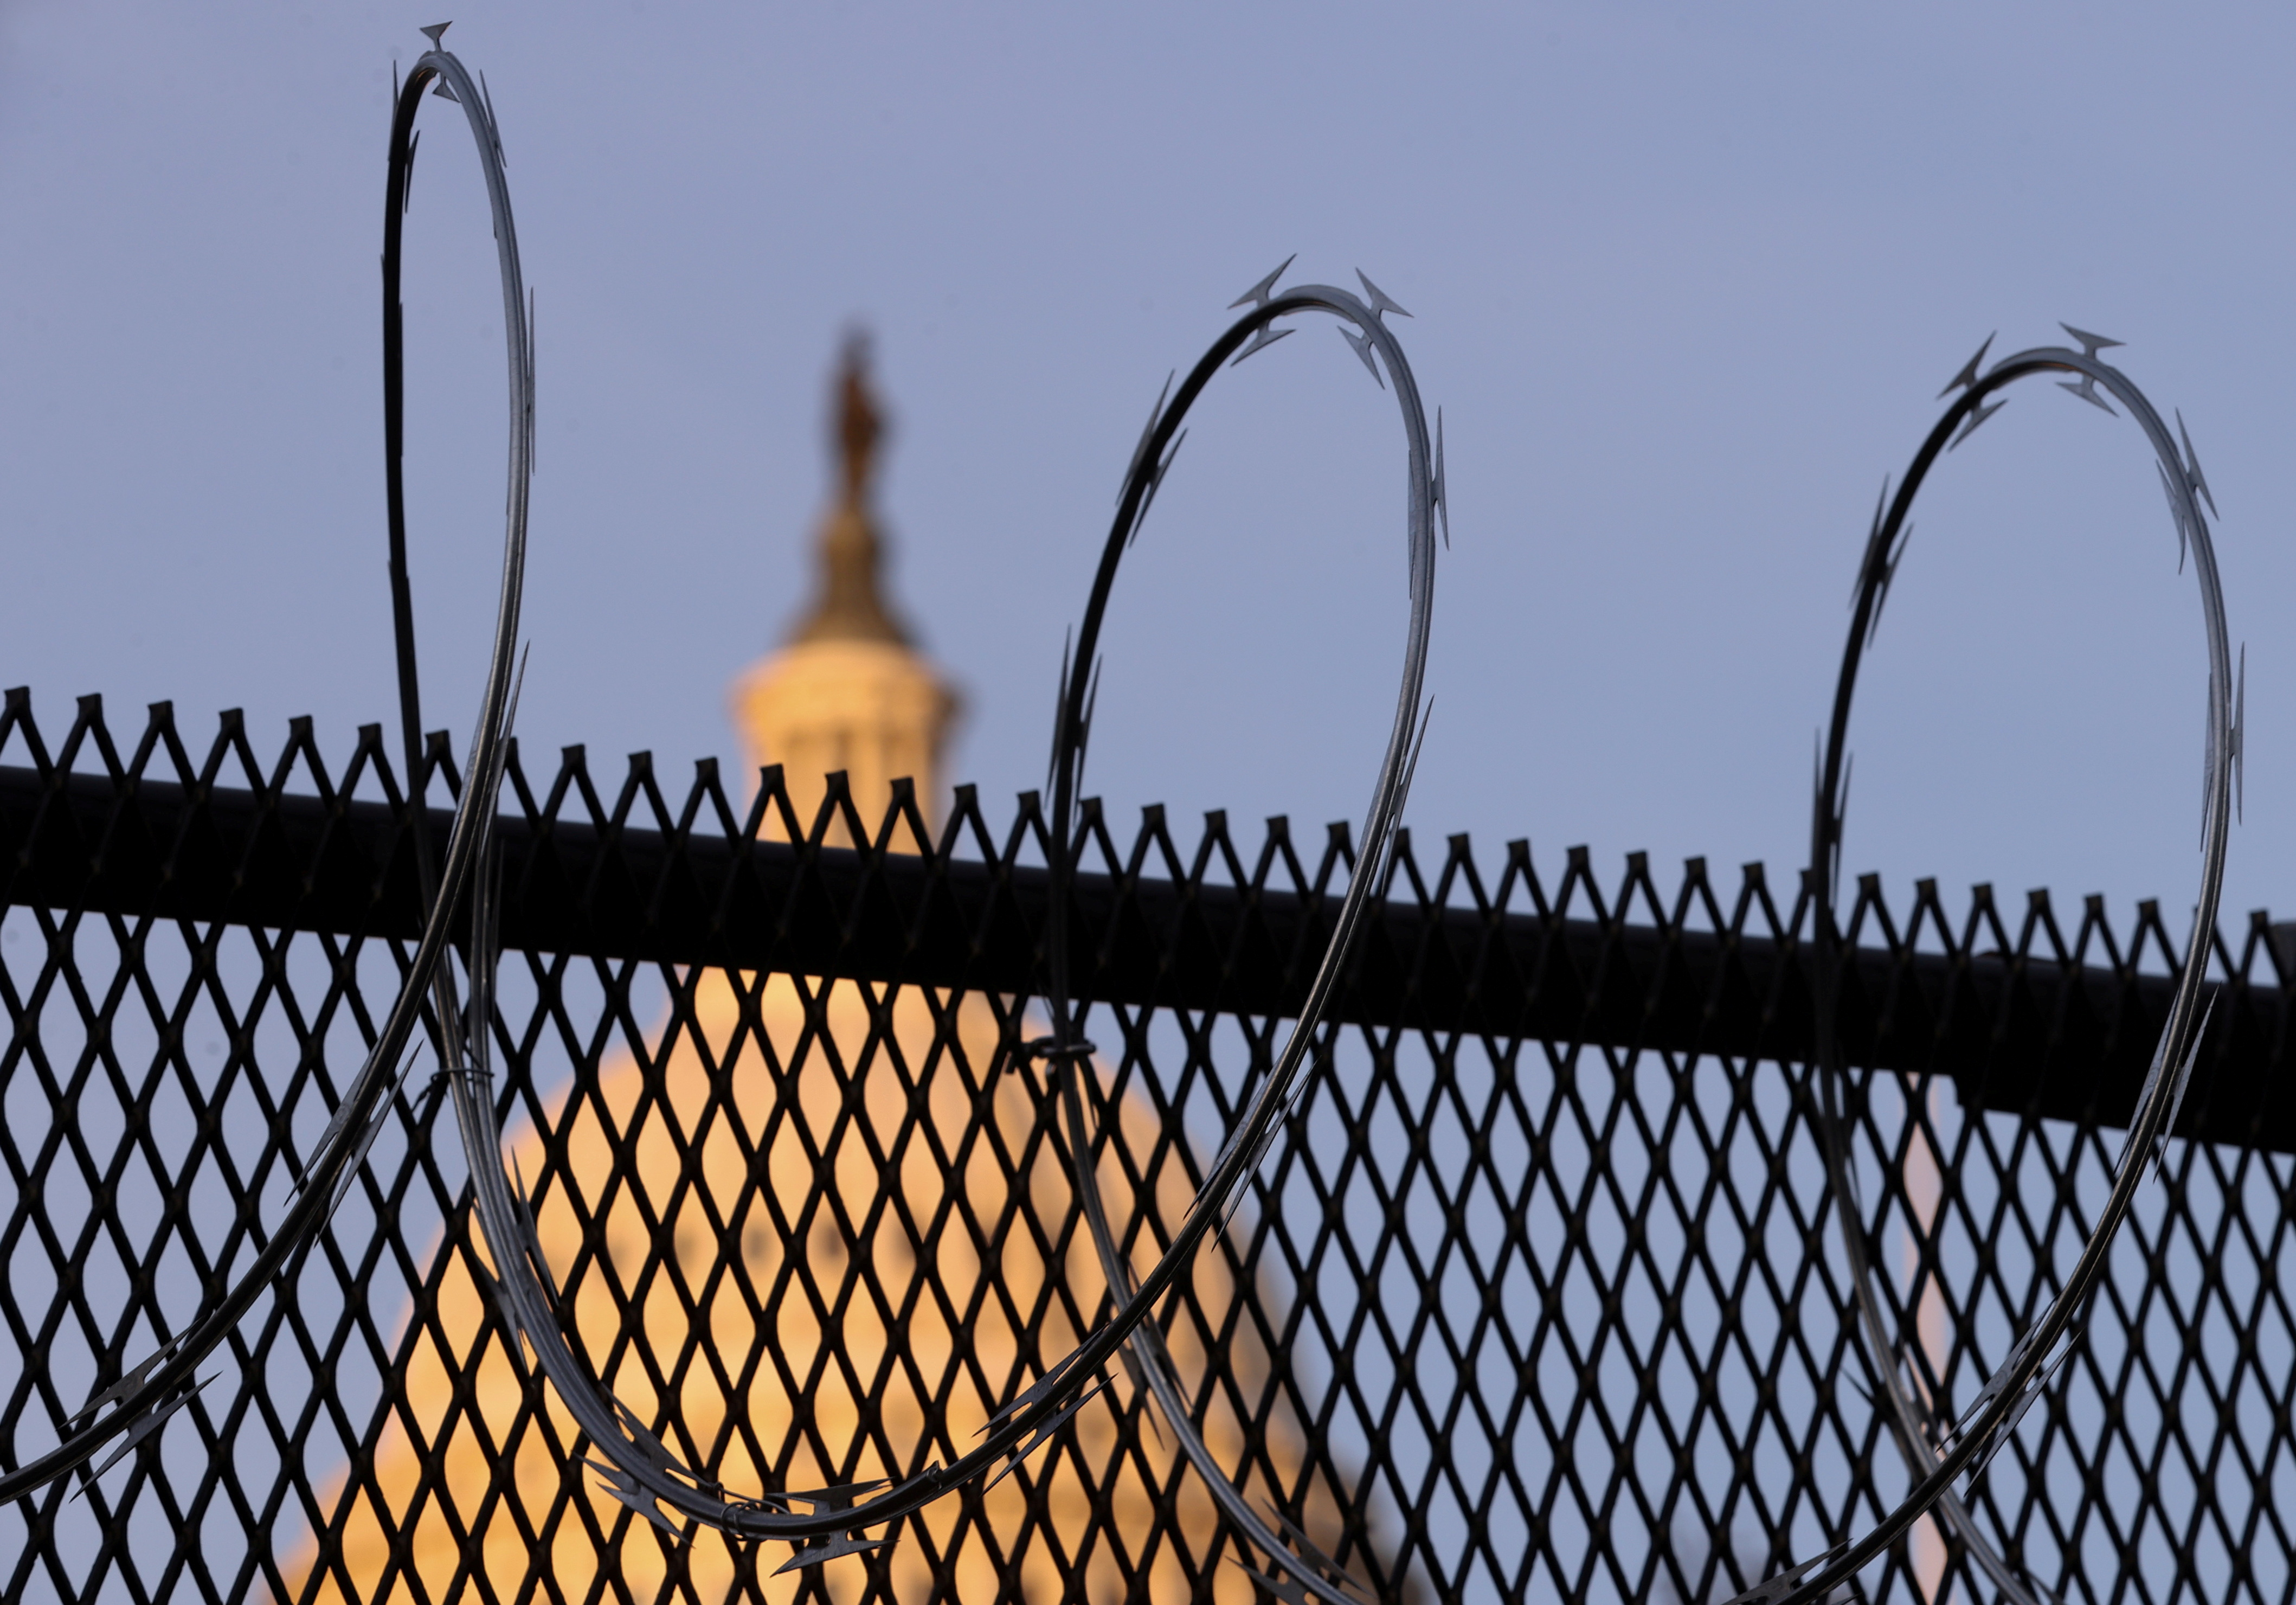 Newly-installed razor wire tops the unscalable fence surrounding the U.S. Capitol in the wake of the January 6th riot and ahead of the upcoming inauguration in Washington, U.S. January 14, 2021. REUTERS/Jonathan Ernst/File Photo